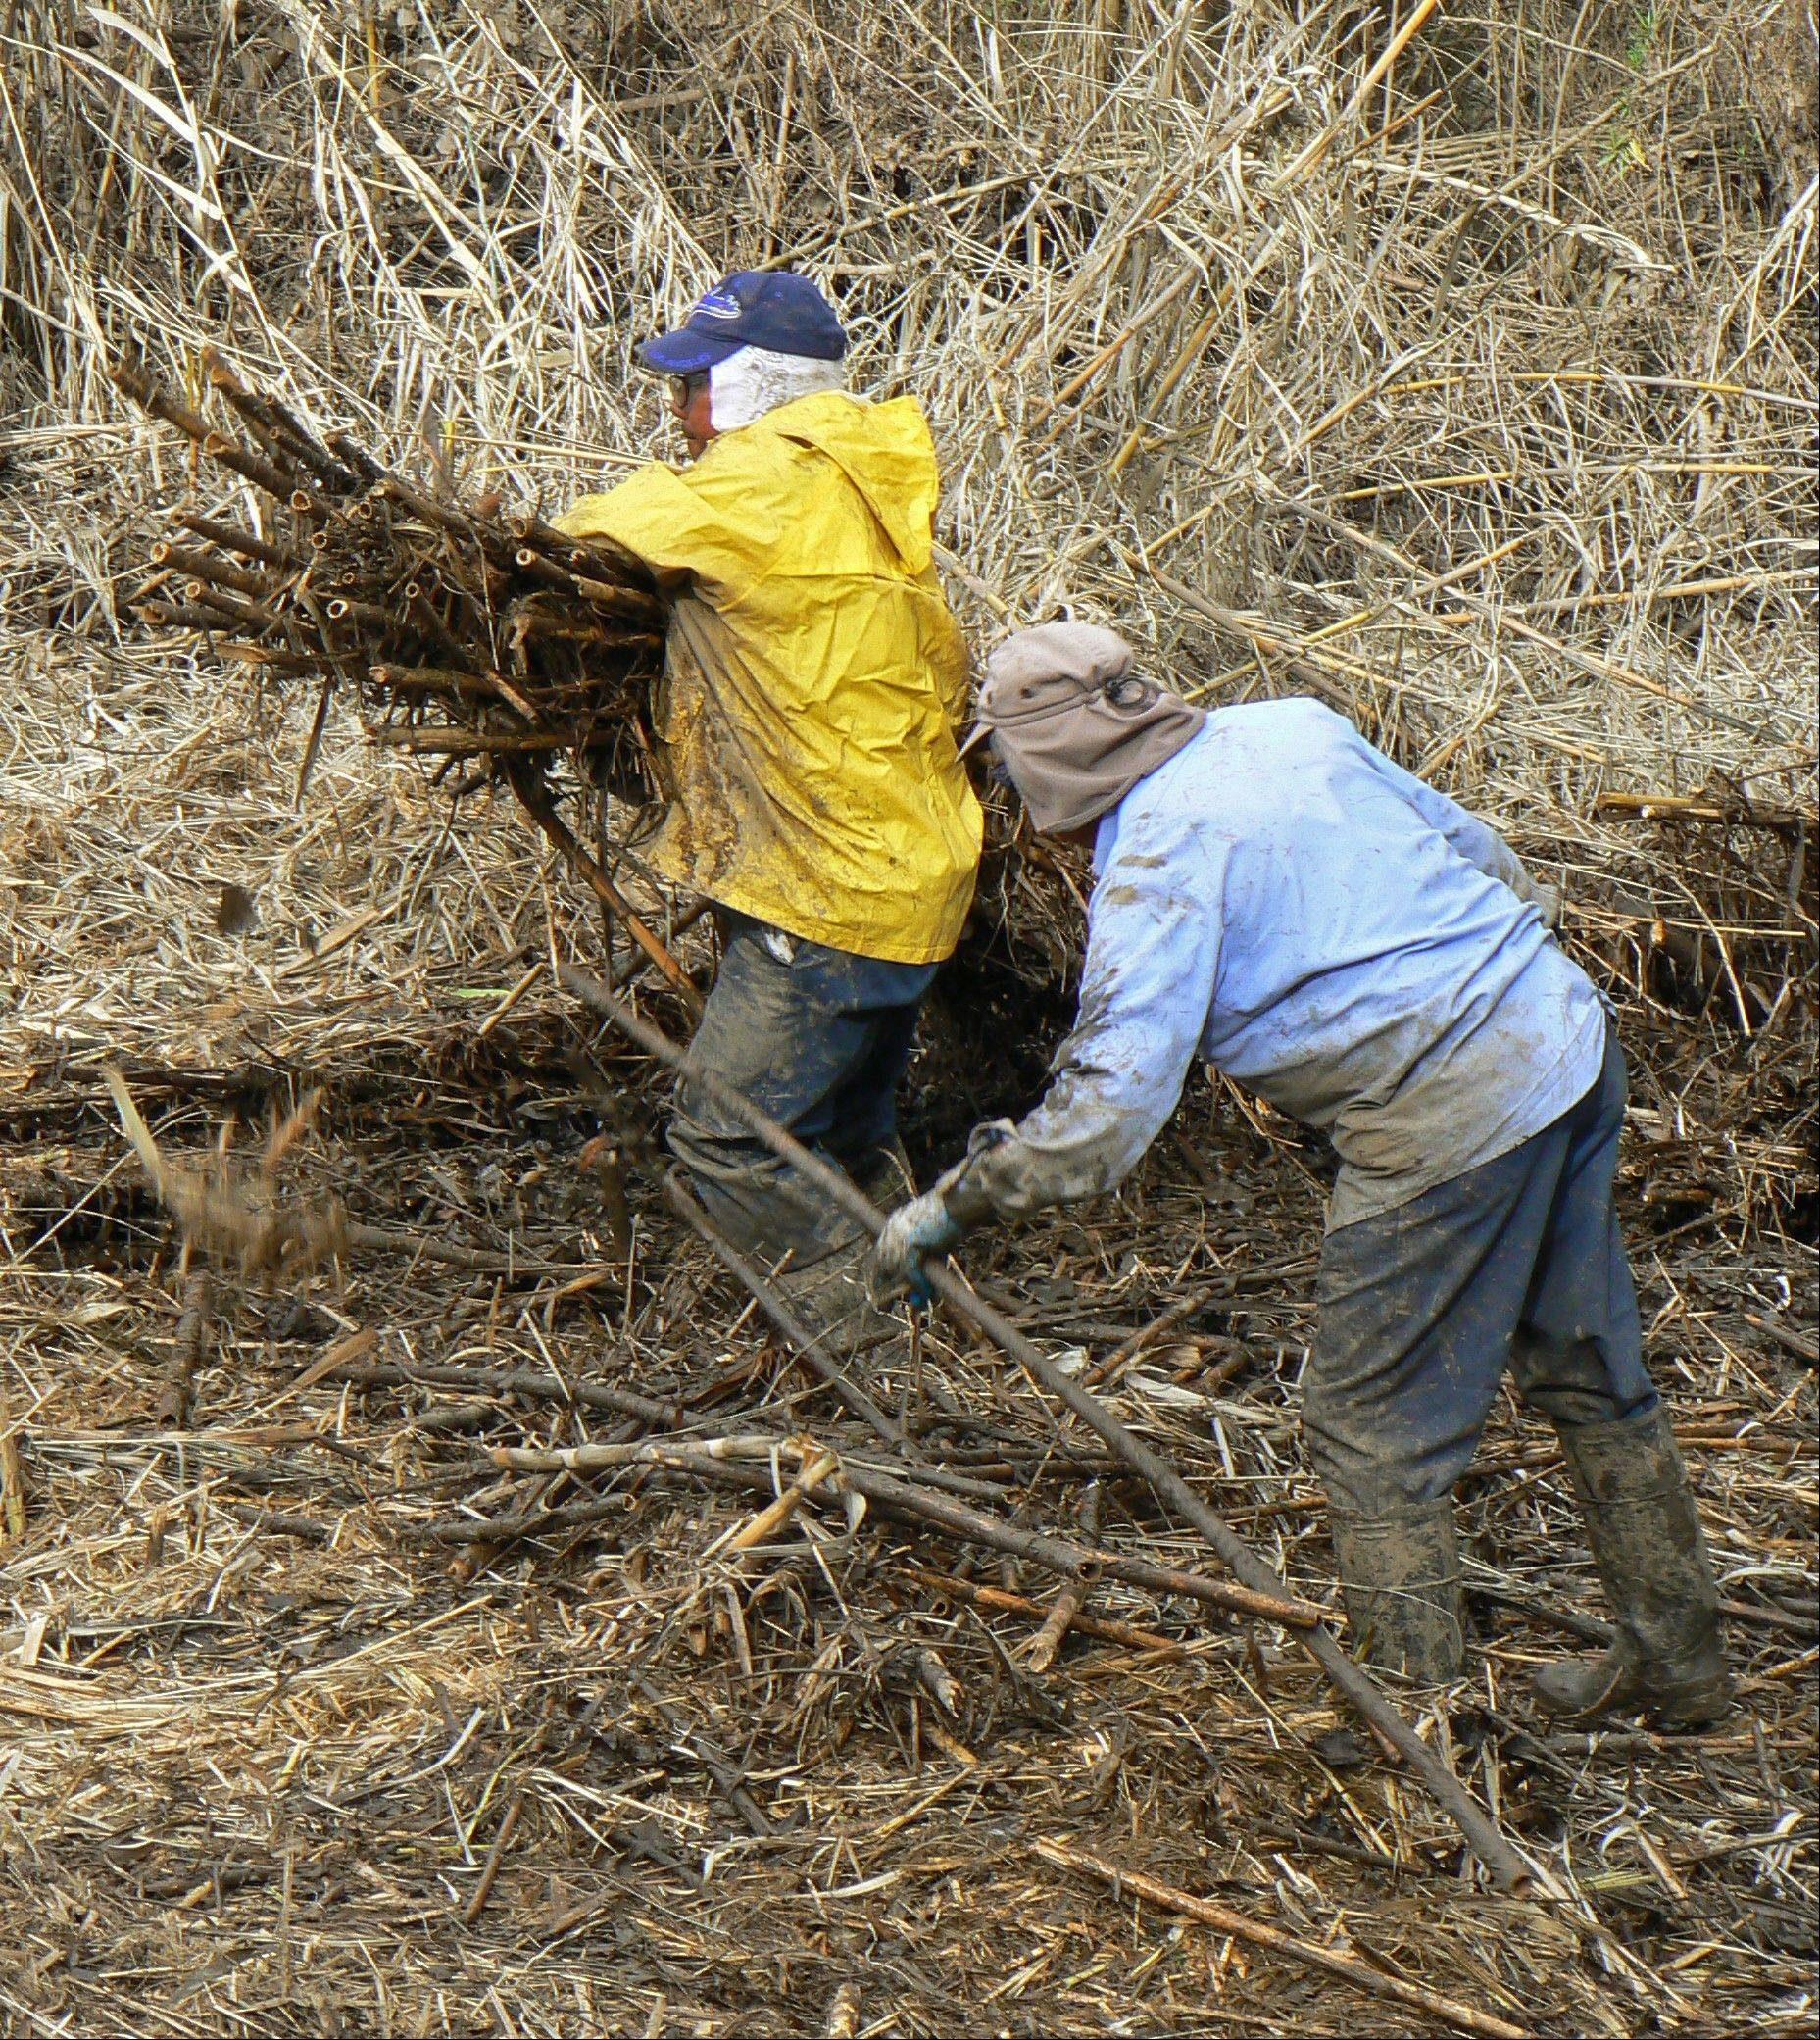 Hand crews cut and haul Arundo donax to higher areas where mowers can grind it in Bonsall, Calif. California has spent more than $70 million trying to eradicate the invasive, self-propagating perennial.